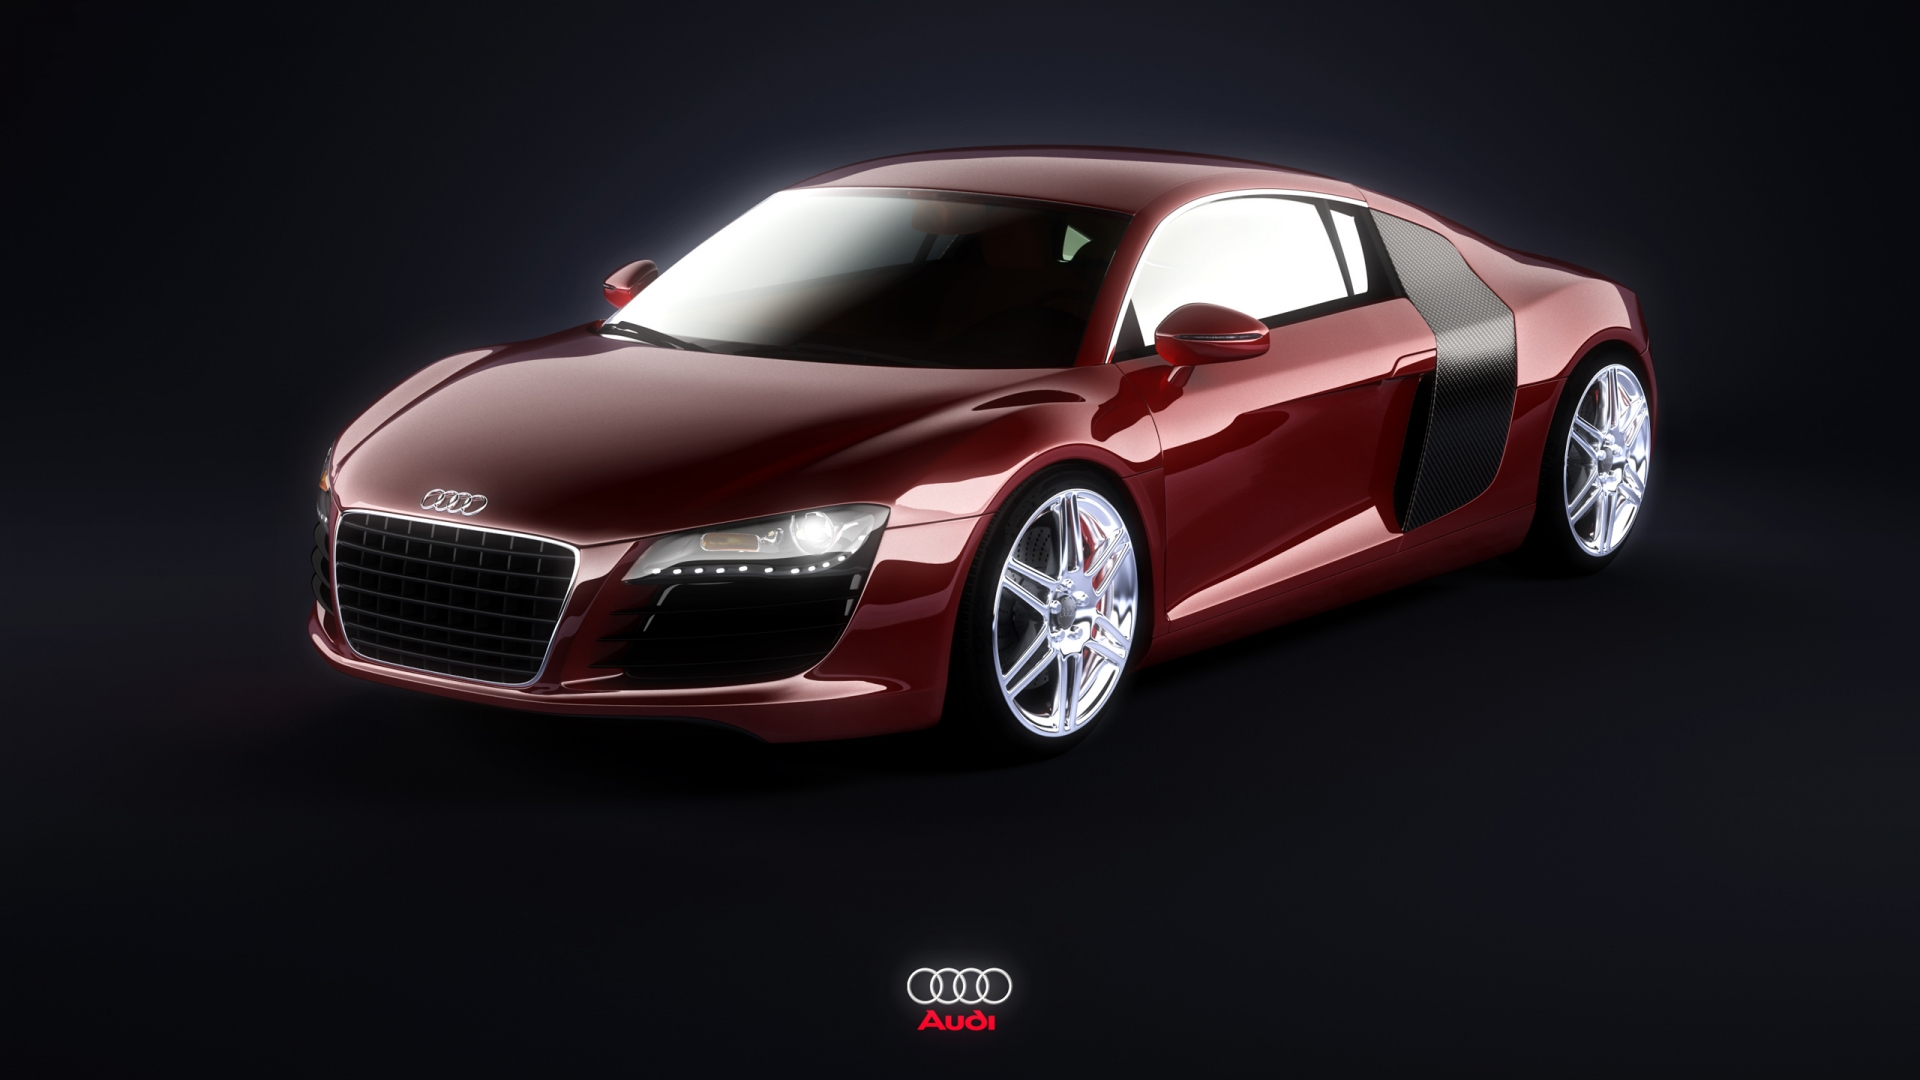 Audi R8 Burgundy   High Definition Wallpapers   HD wallpapers 1920x1080